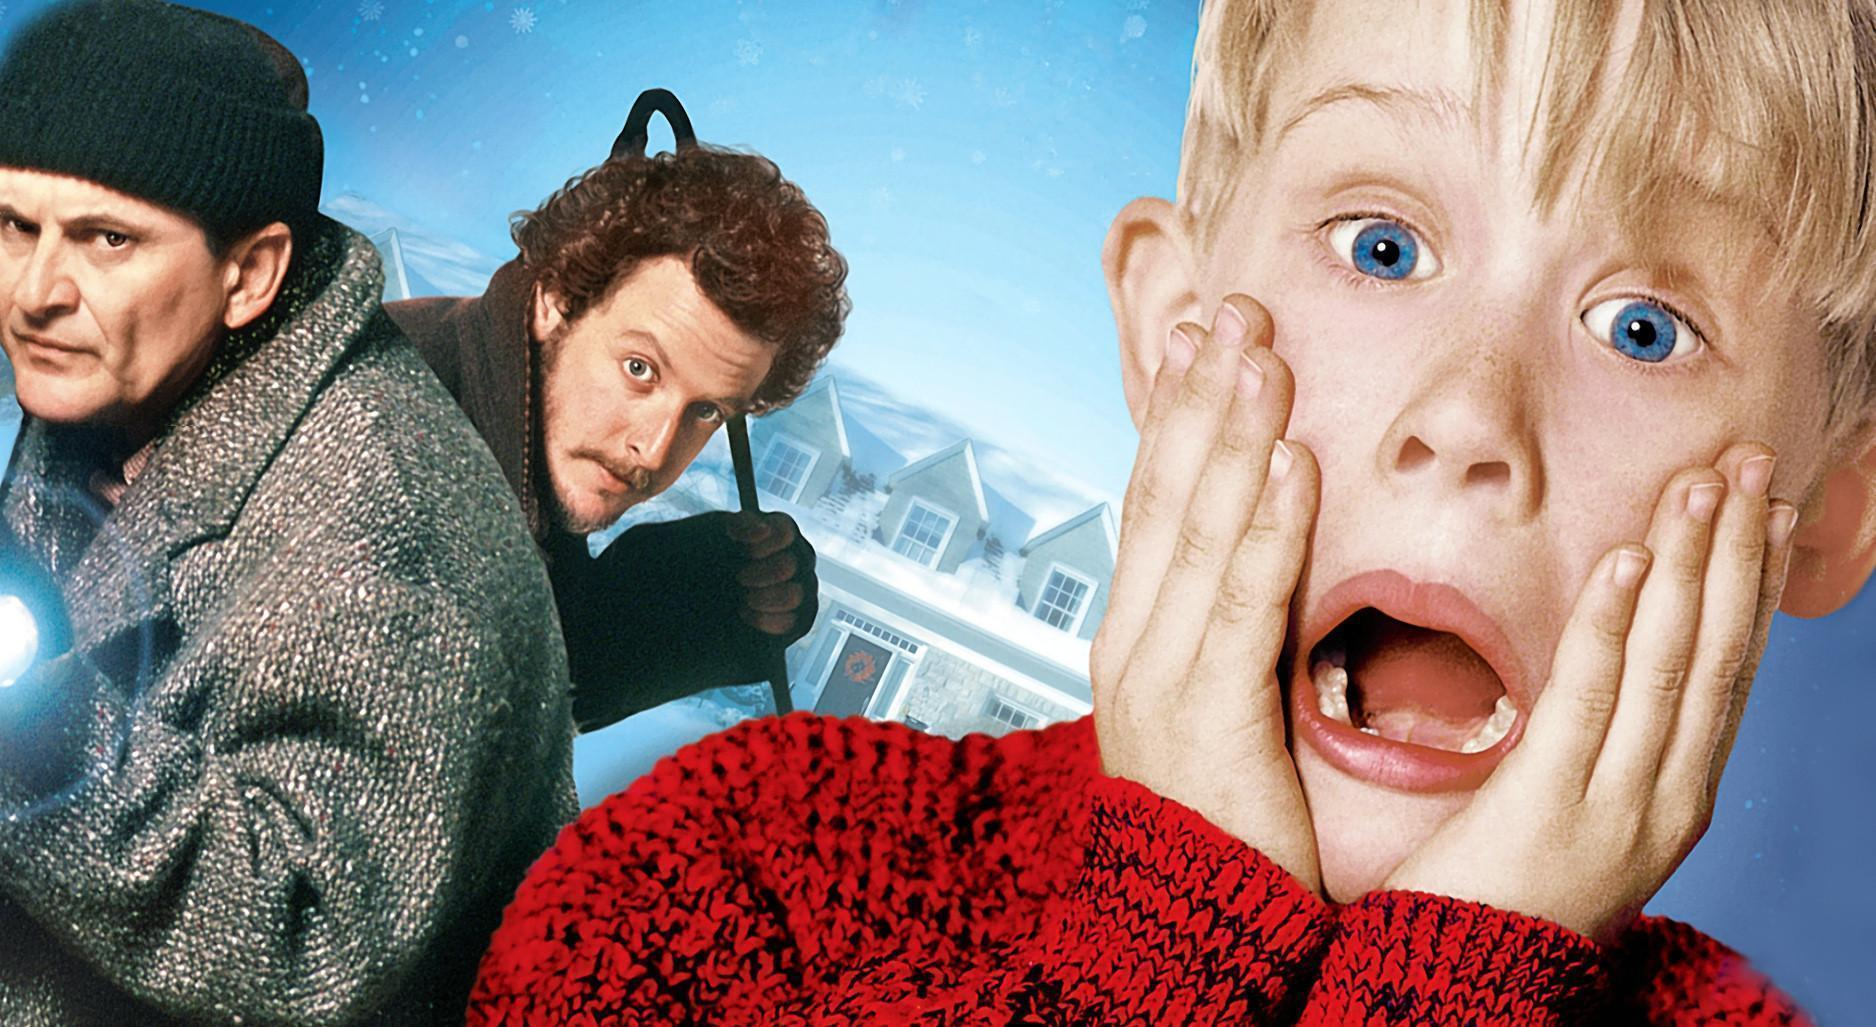 800x600px Home Alone 239.66 KB